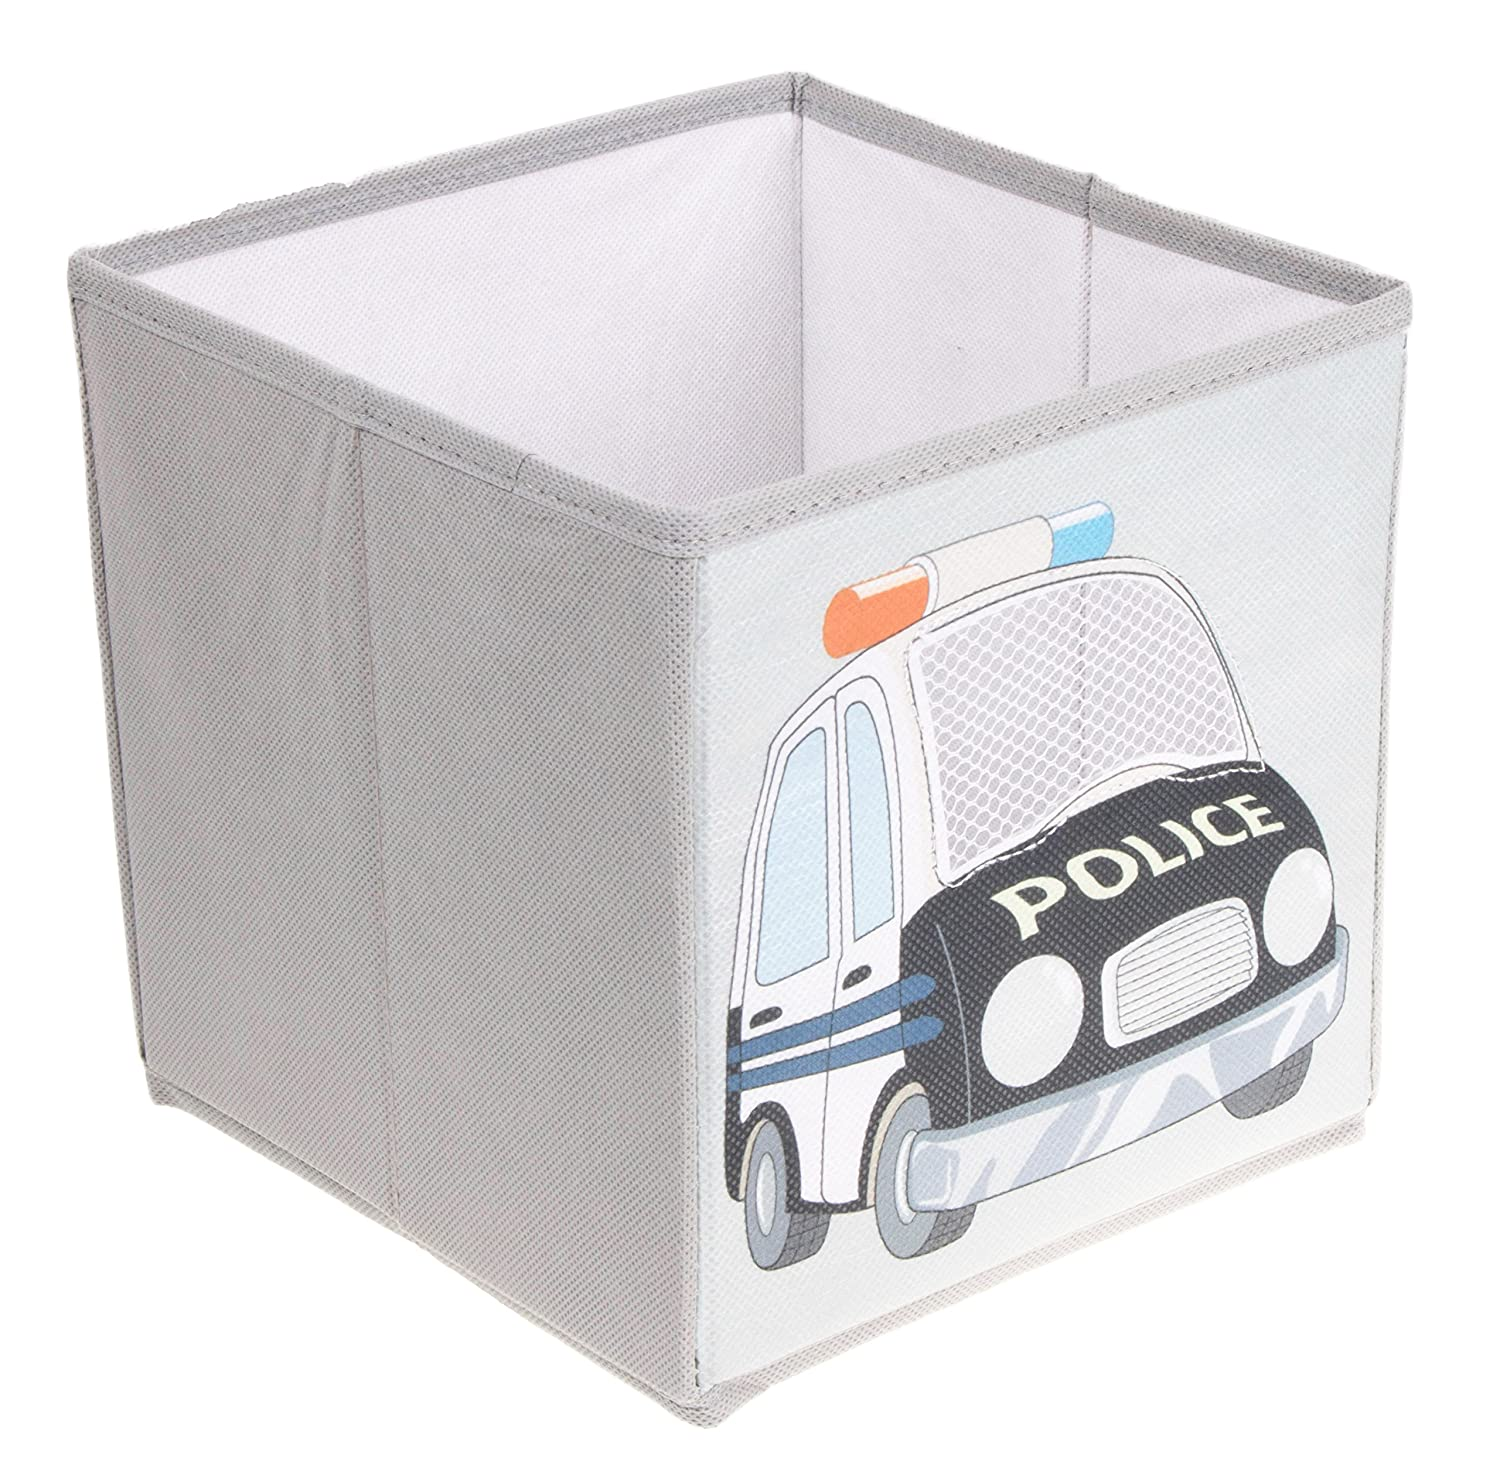 Clever Creations Police Car Collapsible Storage Organizer Storage Box Folding Storage Ottoman for Your Bedroom   Perfect Size Storage Chest for Books, Shoes & Games